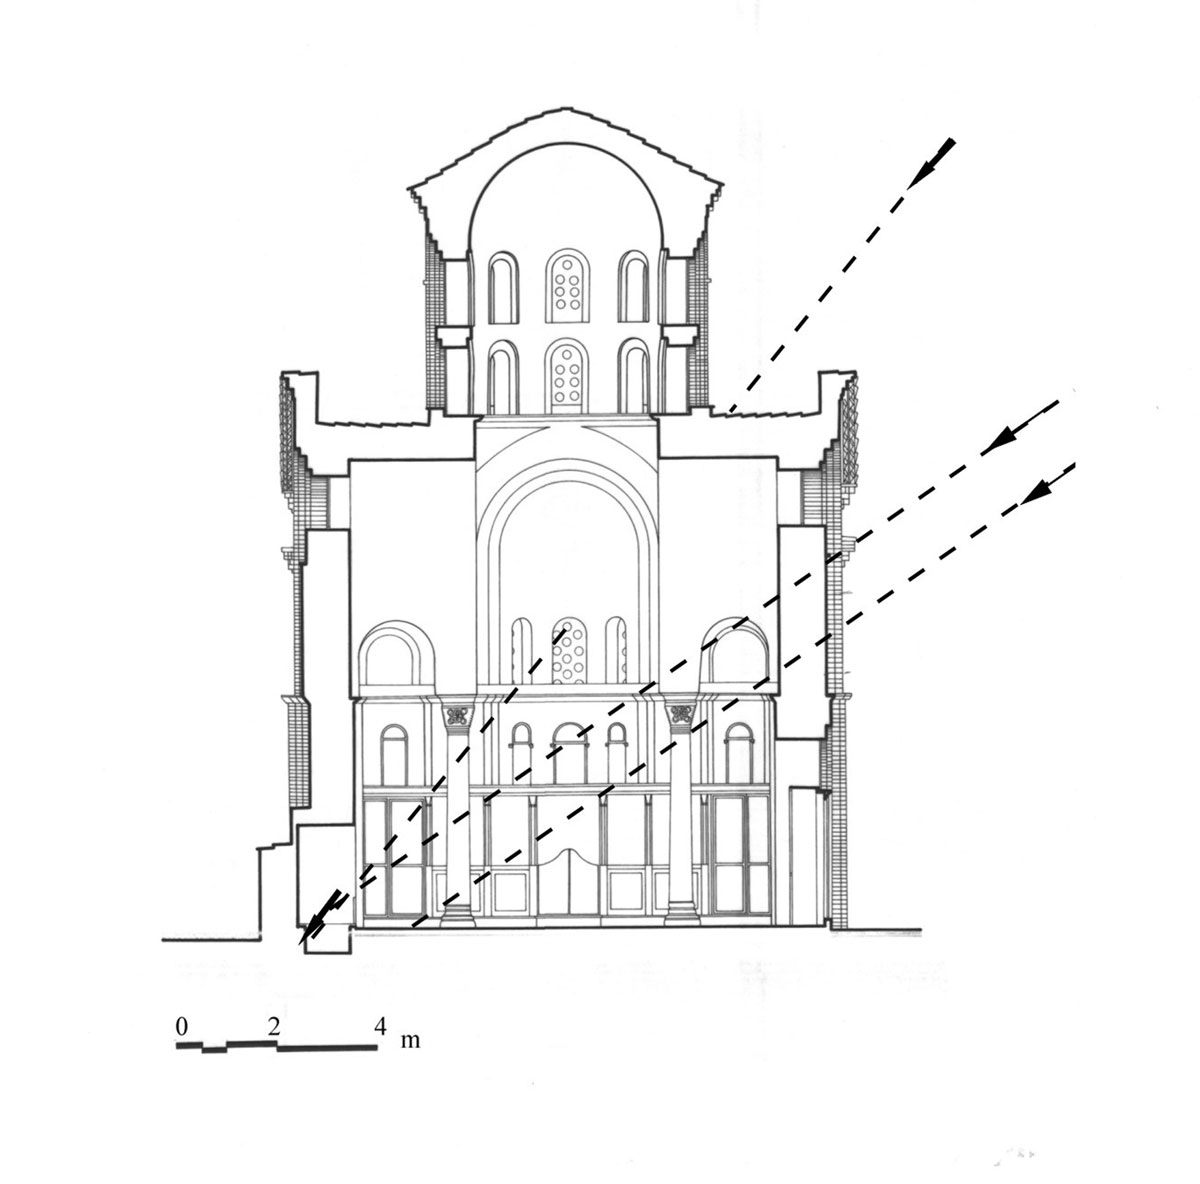 Fig. 11. Cross section widthwise, schematic depiction of sun rays via the apse windows and the south antenna of the cross.